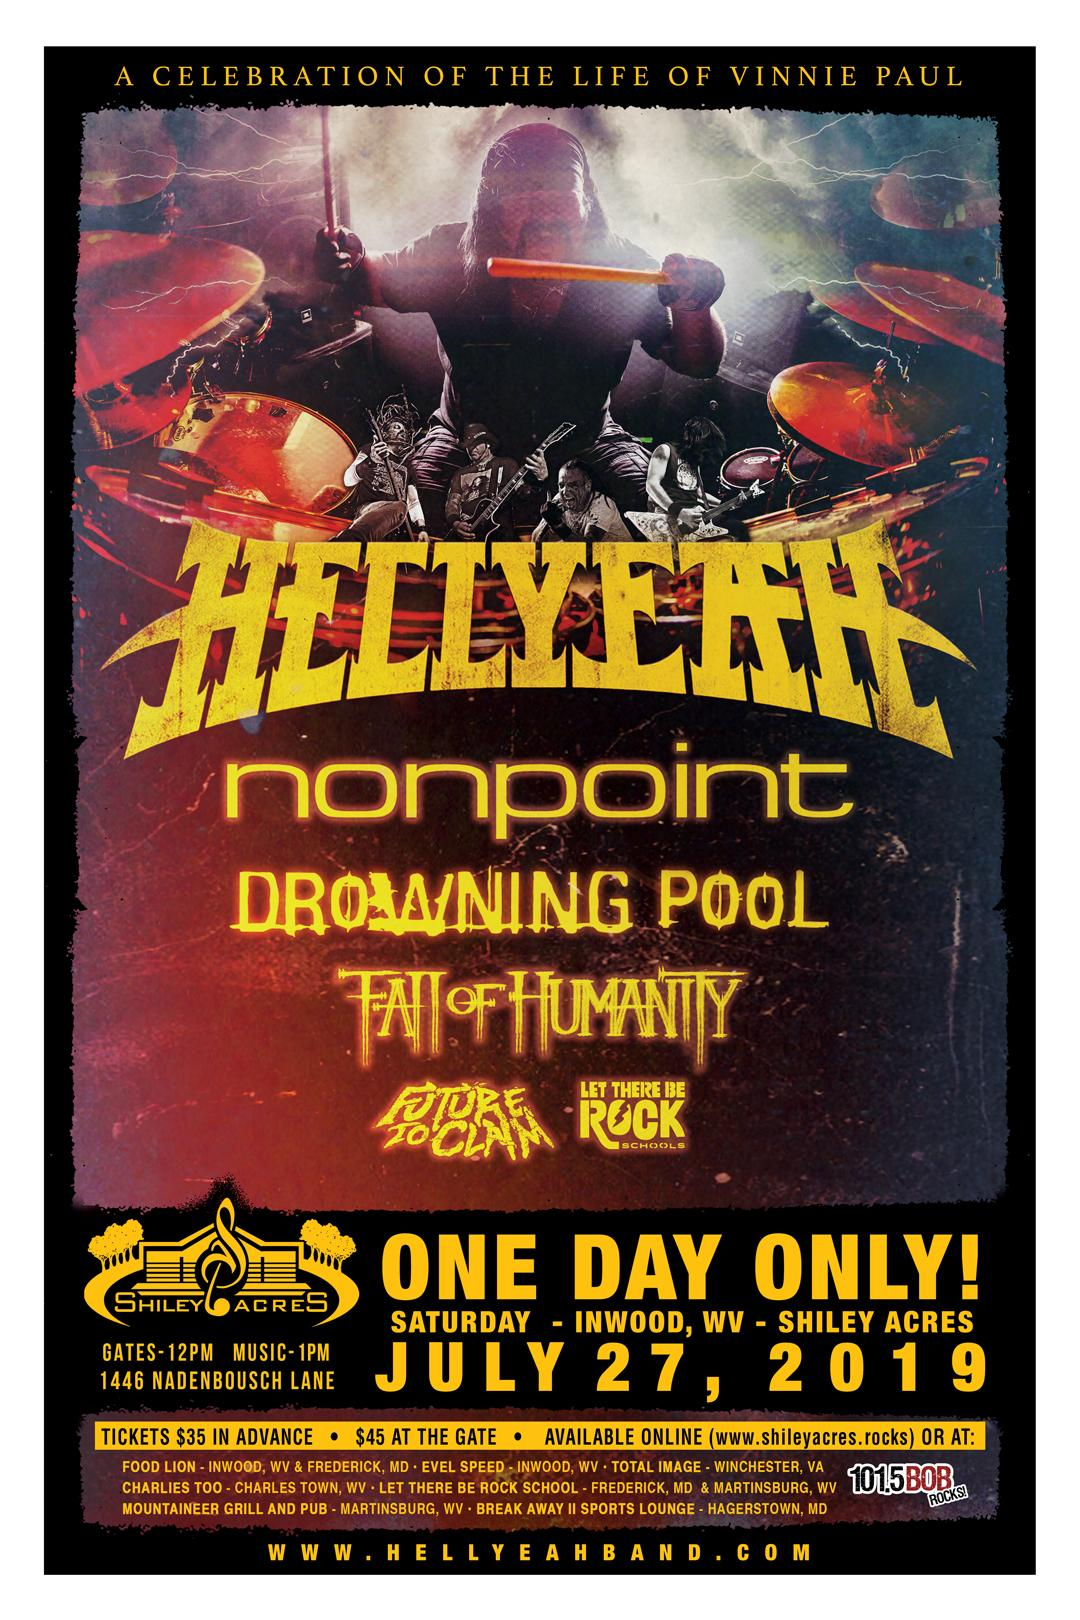 Hellyeah Summer Tour 2019 Tickets In Inwood Wv United States